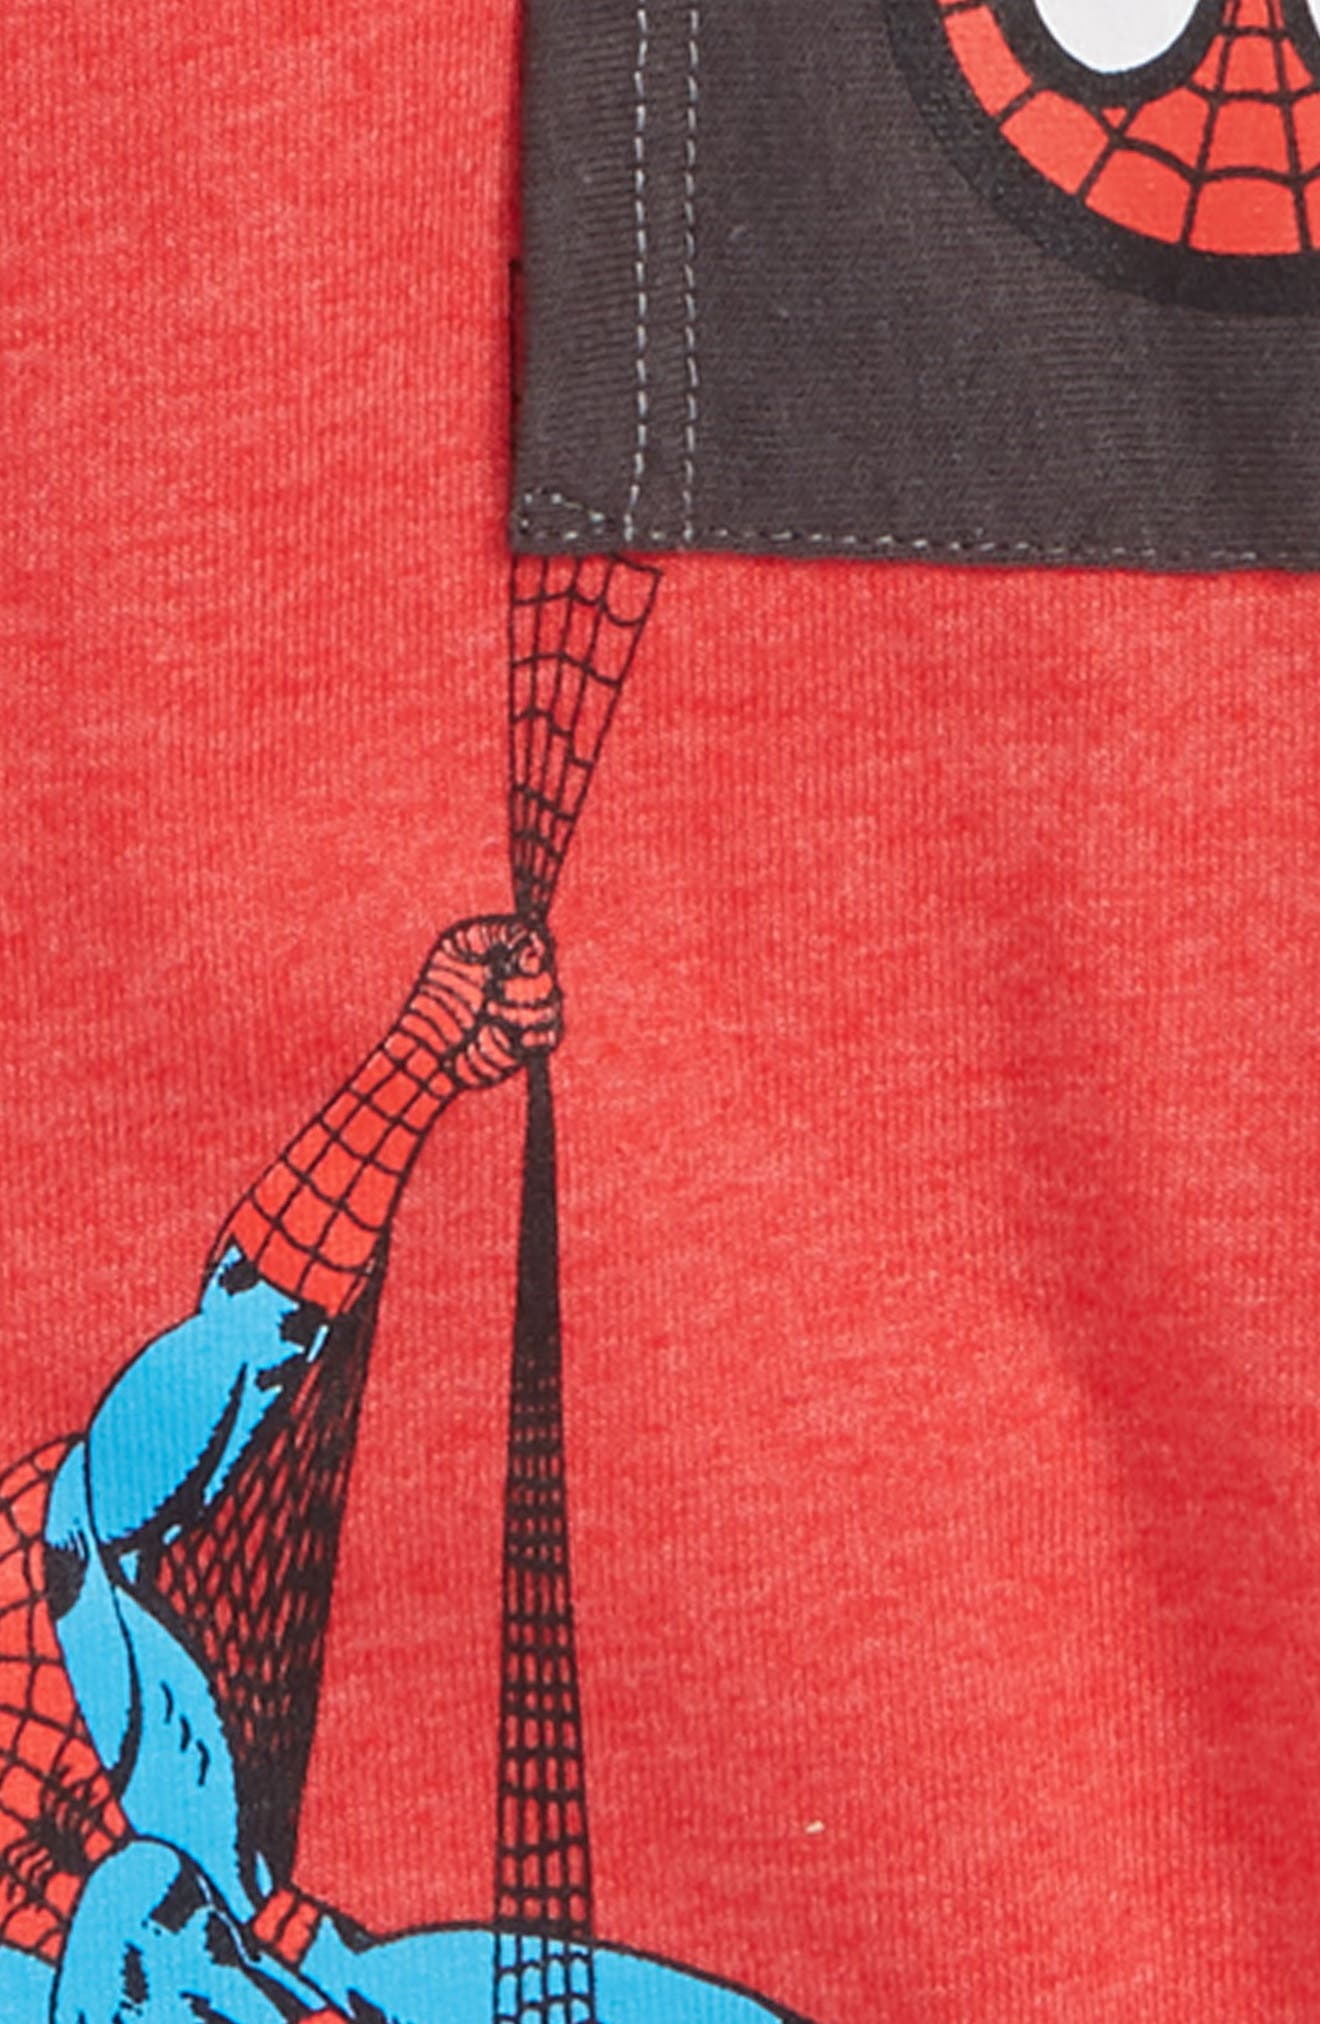 Spiderman Graphic T-Shirt,                             Alternate thumbnail 2, color,                             617